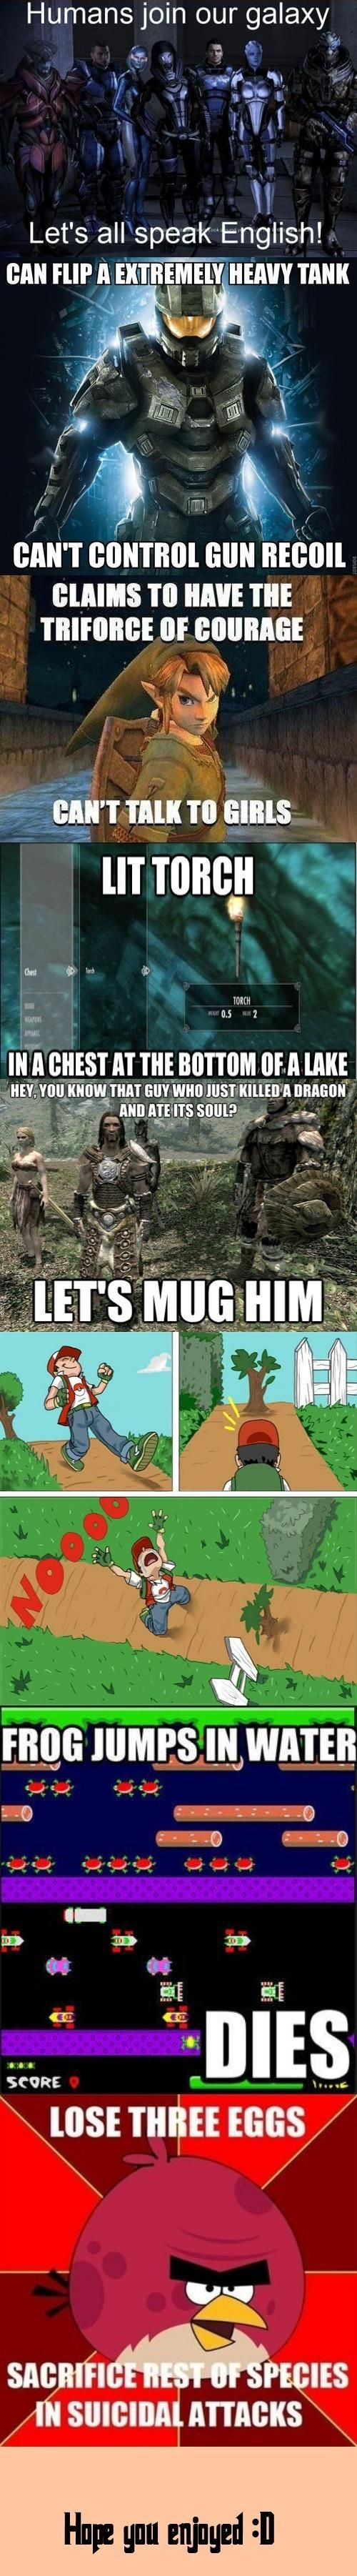 Video Game Logic - Imgur I care very little about the last one but these are dry accurate.